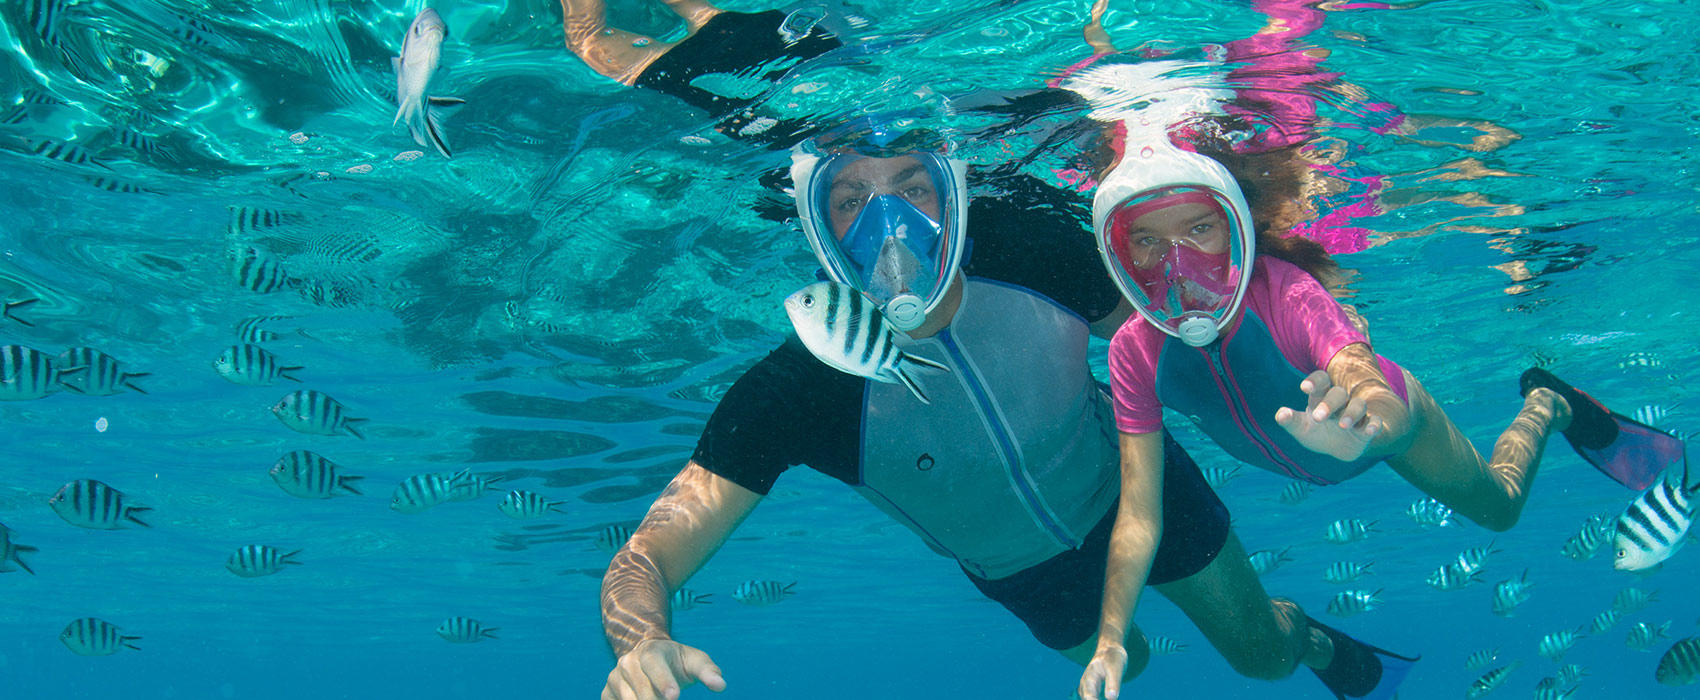 How To Choose Your Snorkeling Equipment?